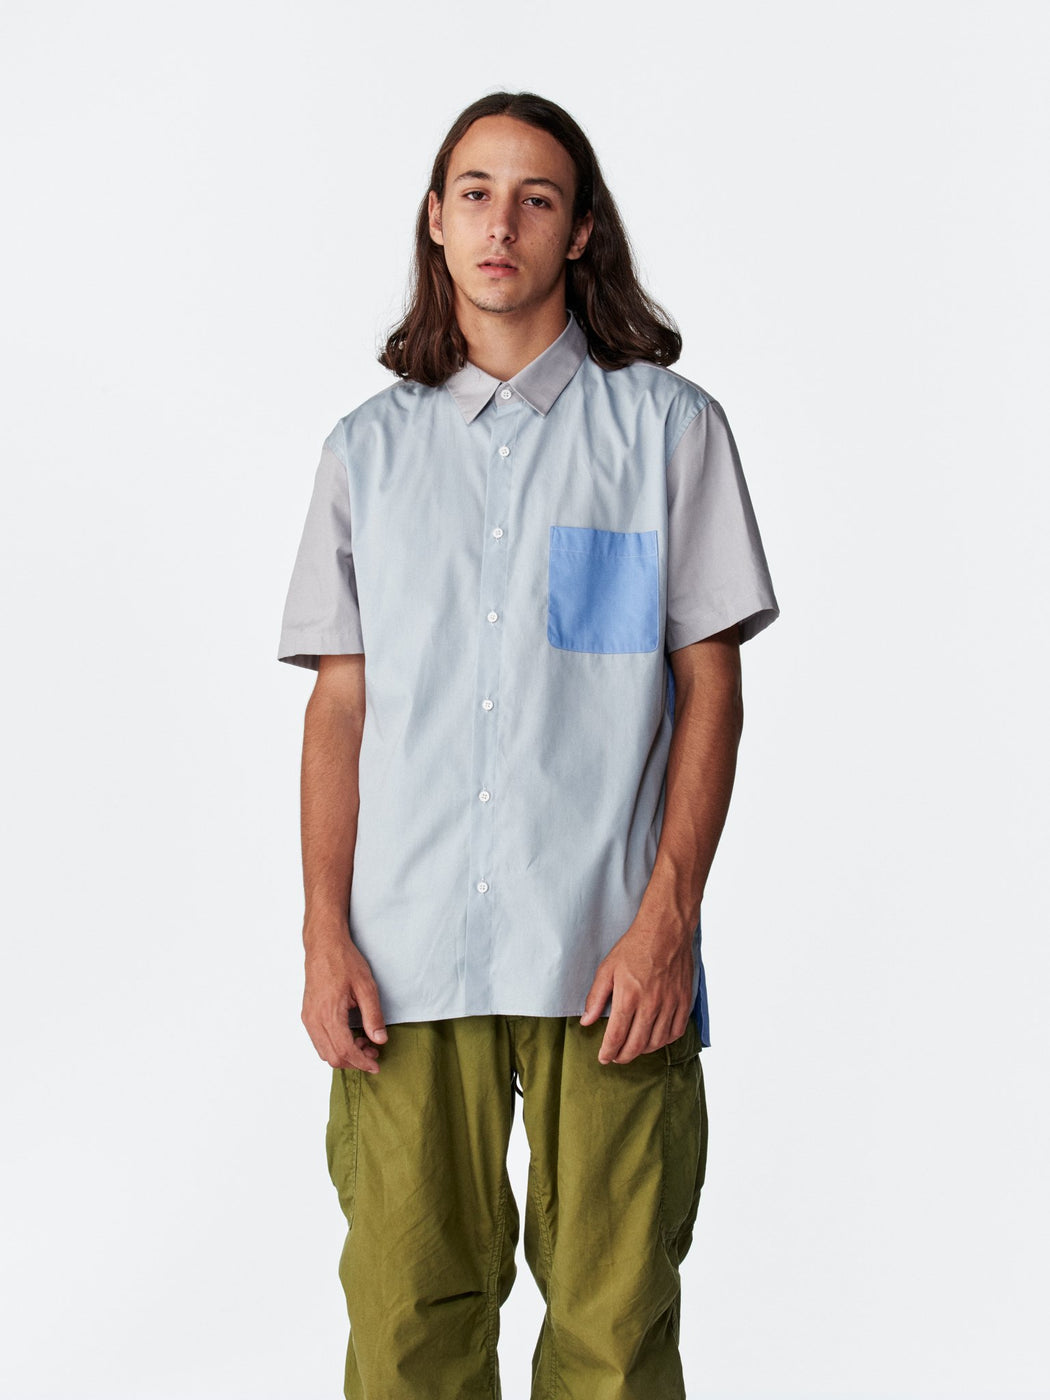 ALOYE Color Block Short Sleeve Shirt Blue-Gray